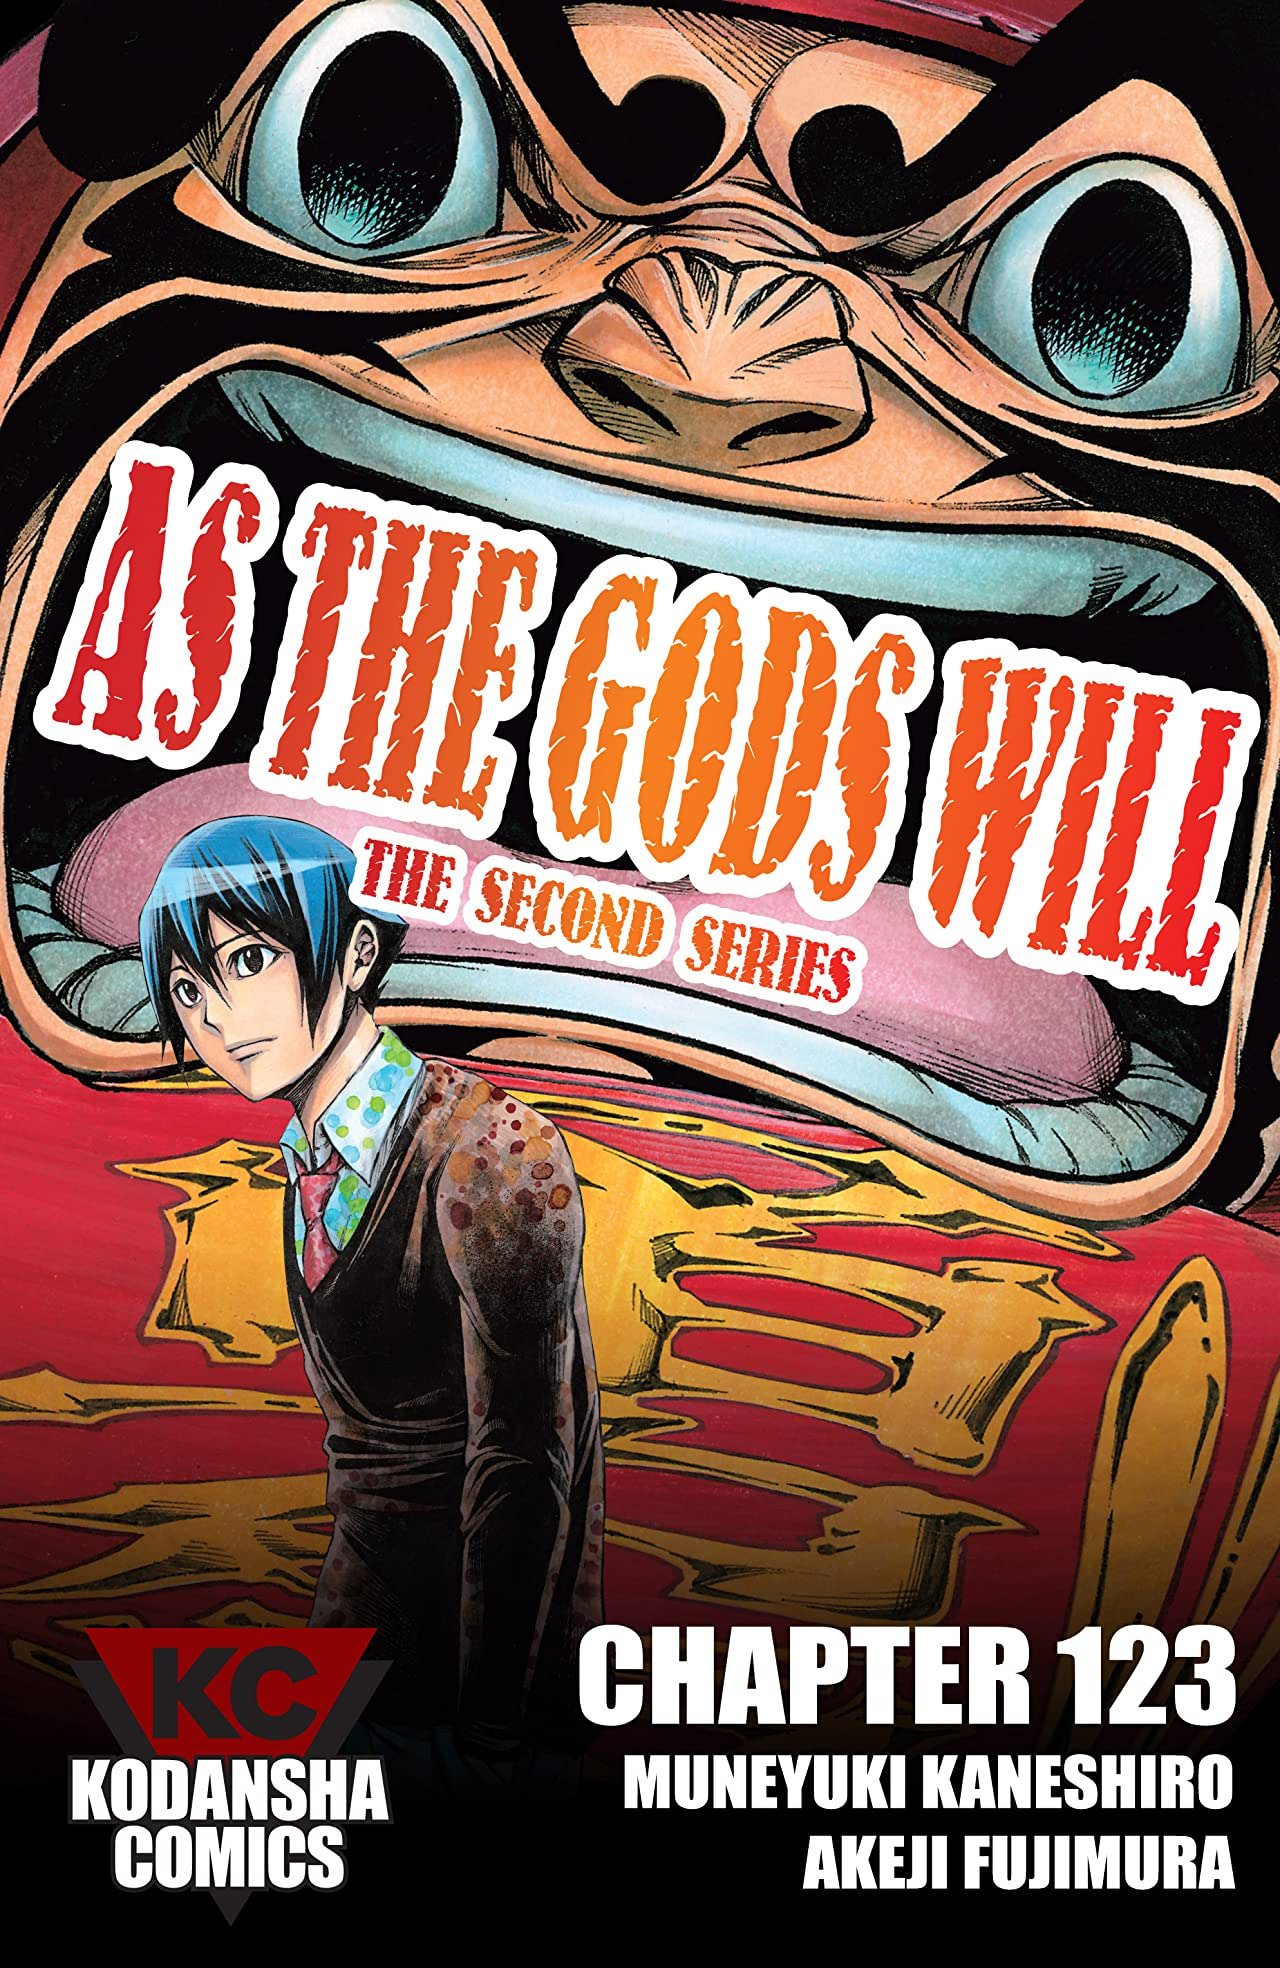 As The Gods Will: The Second Series #123